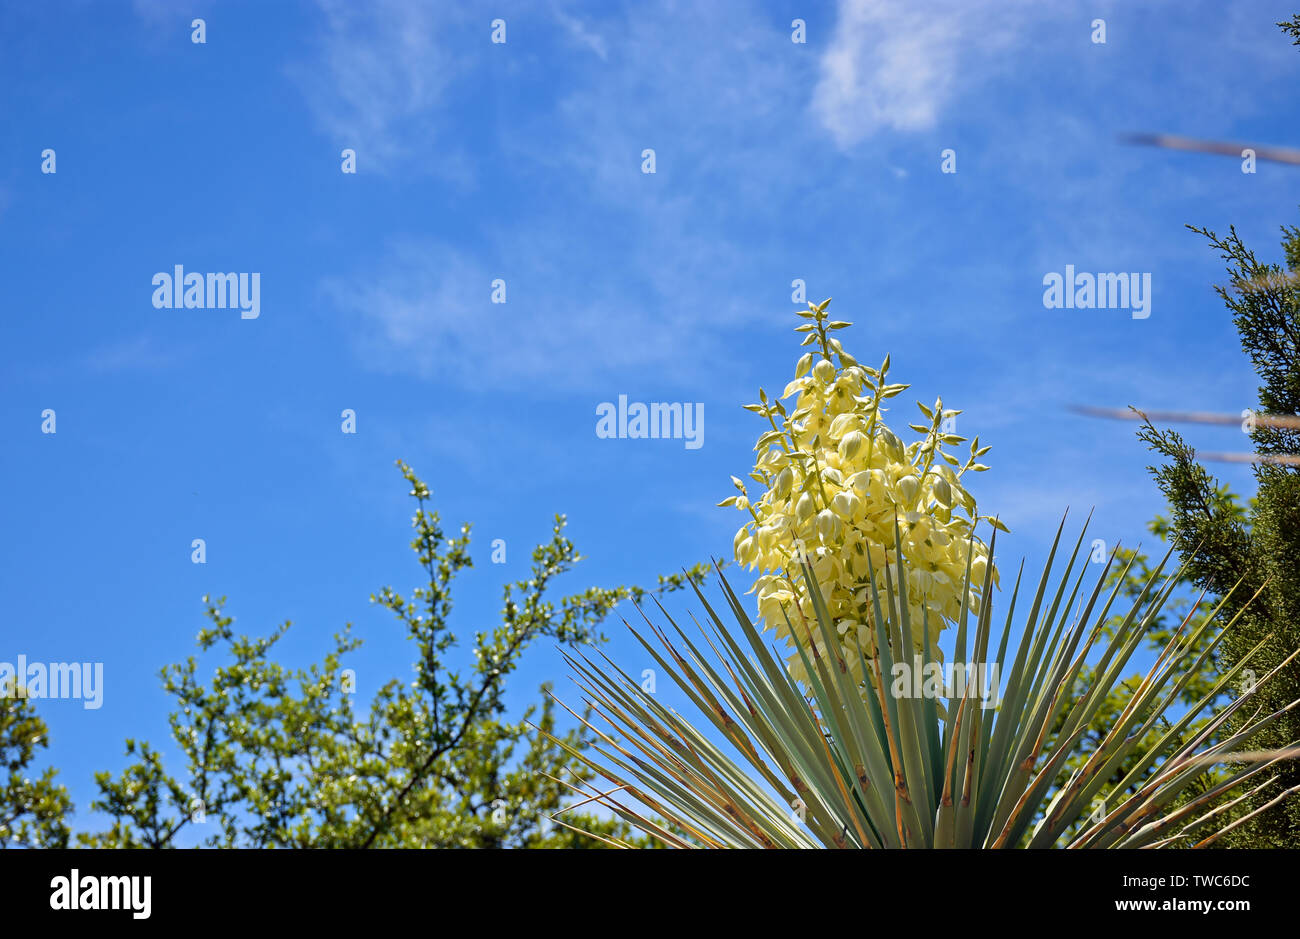 Yucca in the Sky - Stock Image